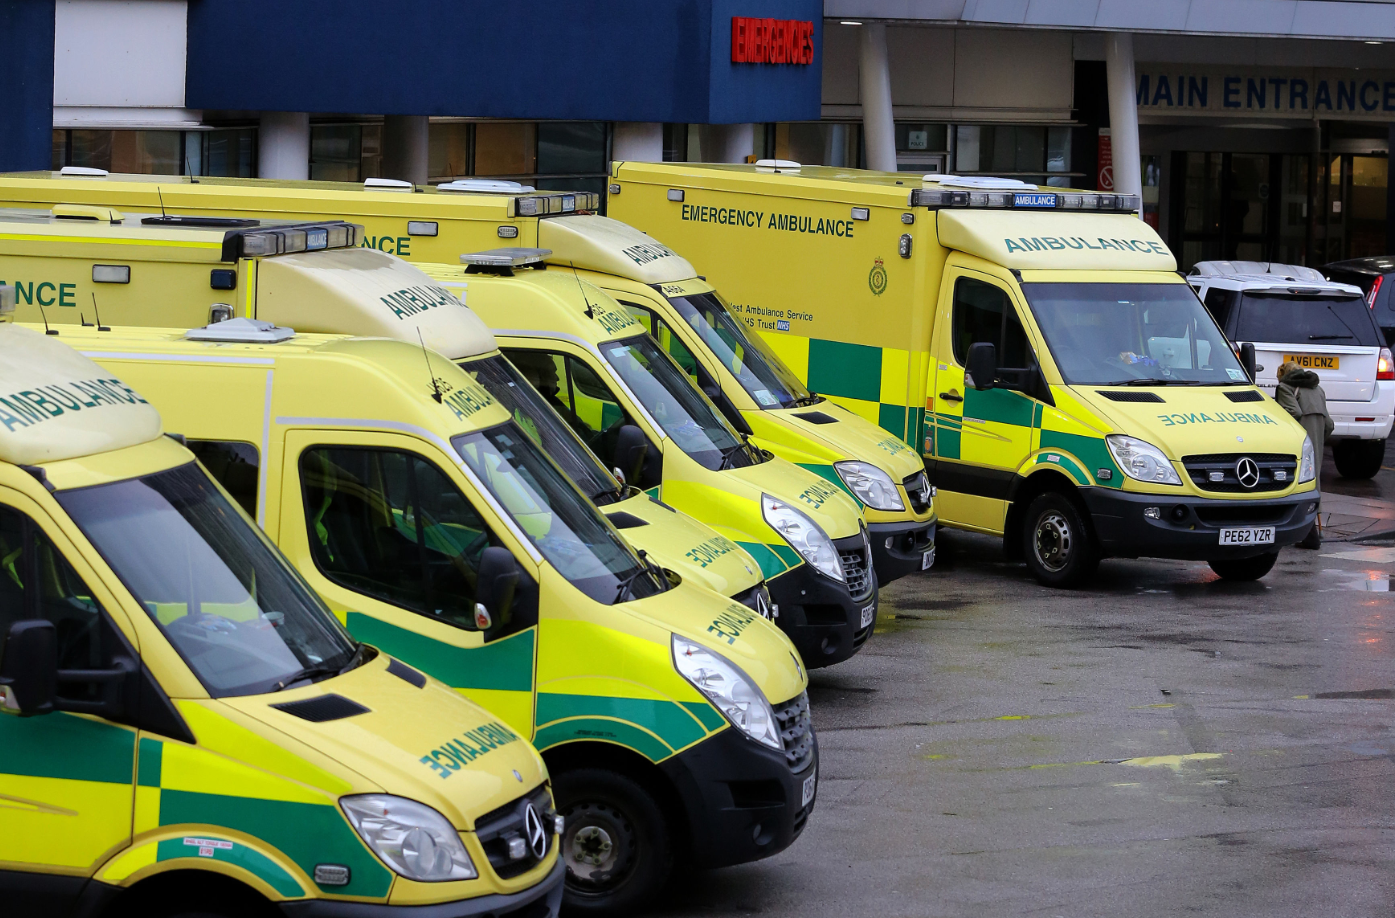 Woman arrested after telling ambulance crew they parked in her way